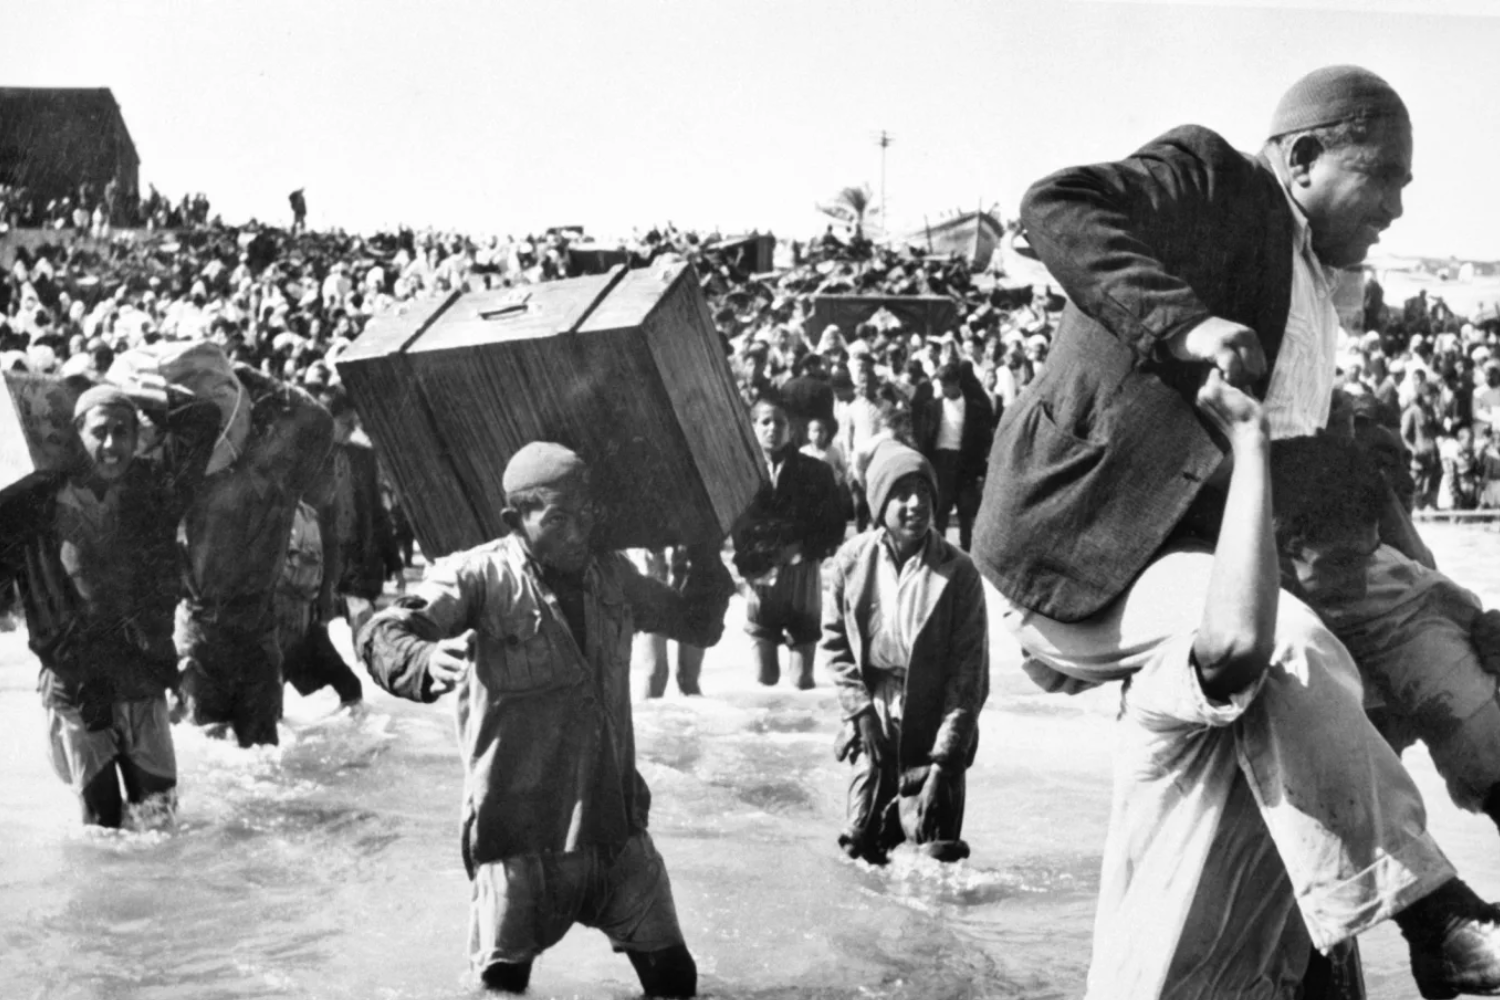 Palestine refugees initially displaced to Beach camp in Gaza board boats to Lebanon or Egypt during the first Arab-Israeli war, 1949 (UN Archives Photo/Hrant Nakashian)